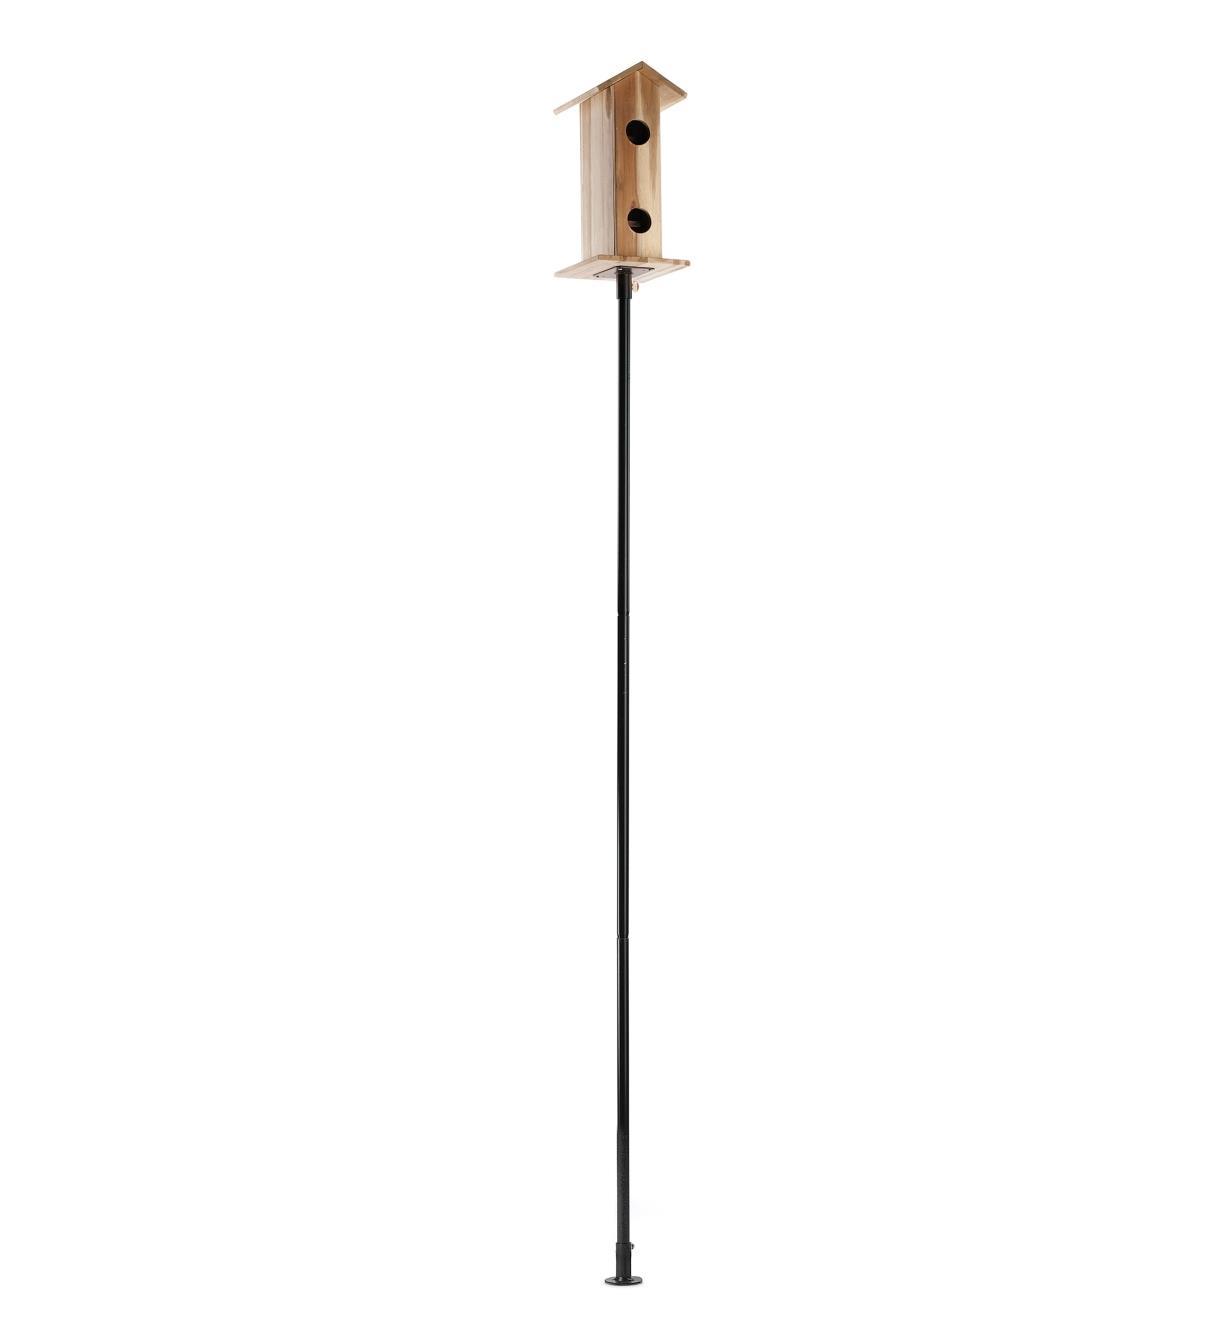 Birdhouse mounted on a flange-top garden pole